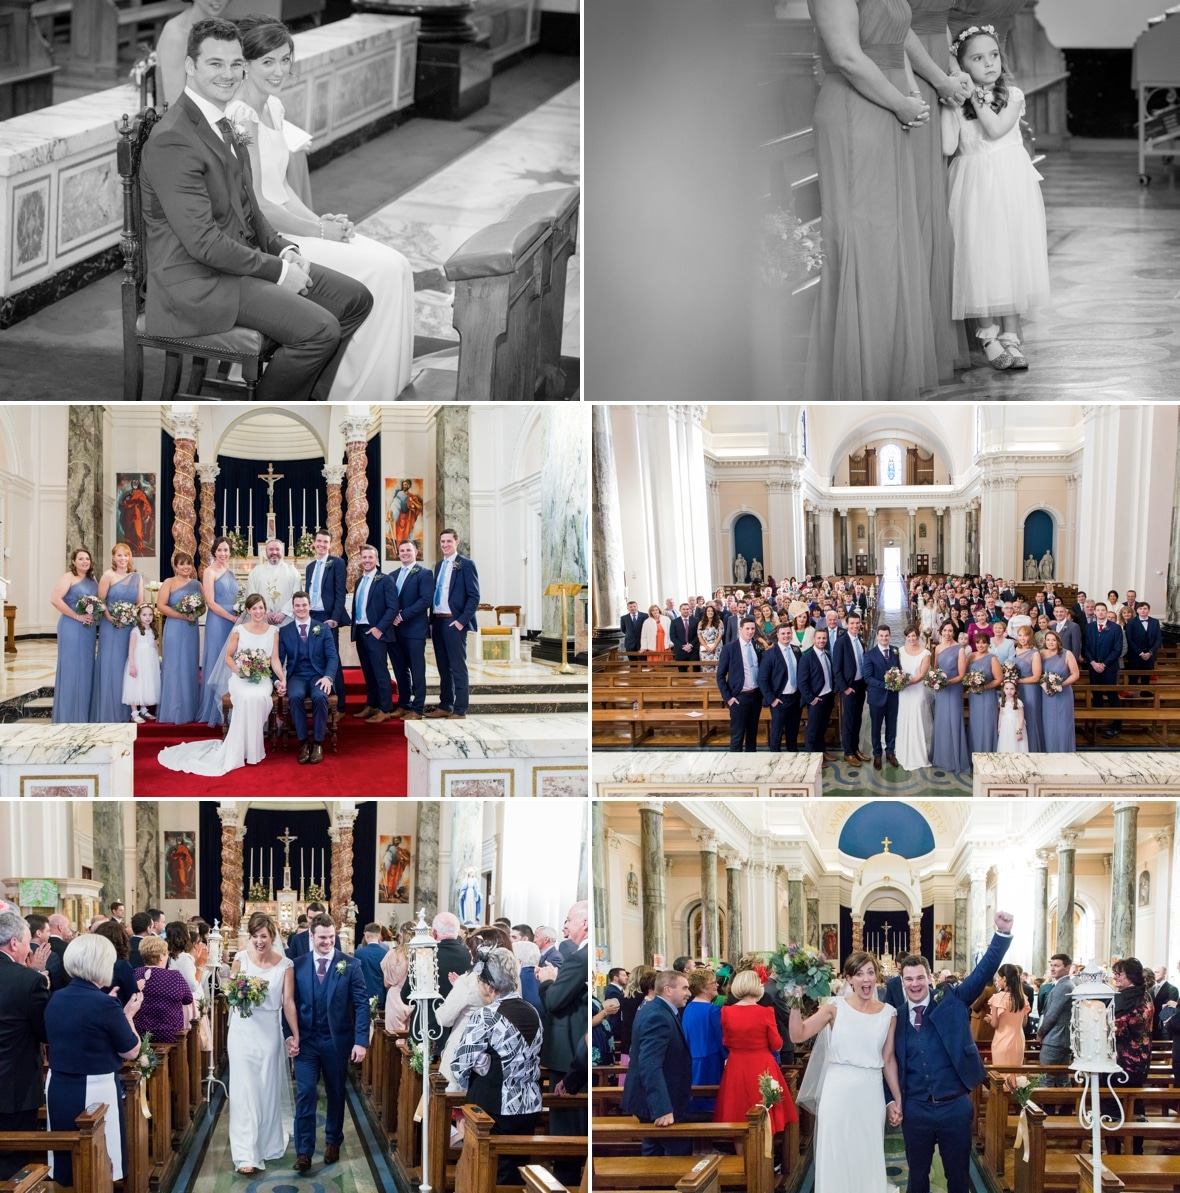 Wedding of Aisling and Eoin in St Peter and Paul's Church in Athlone